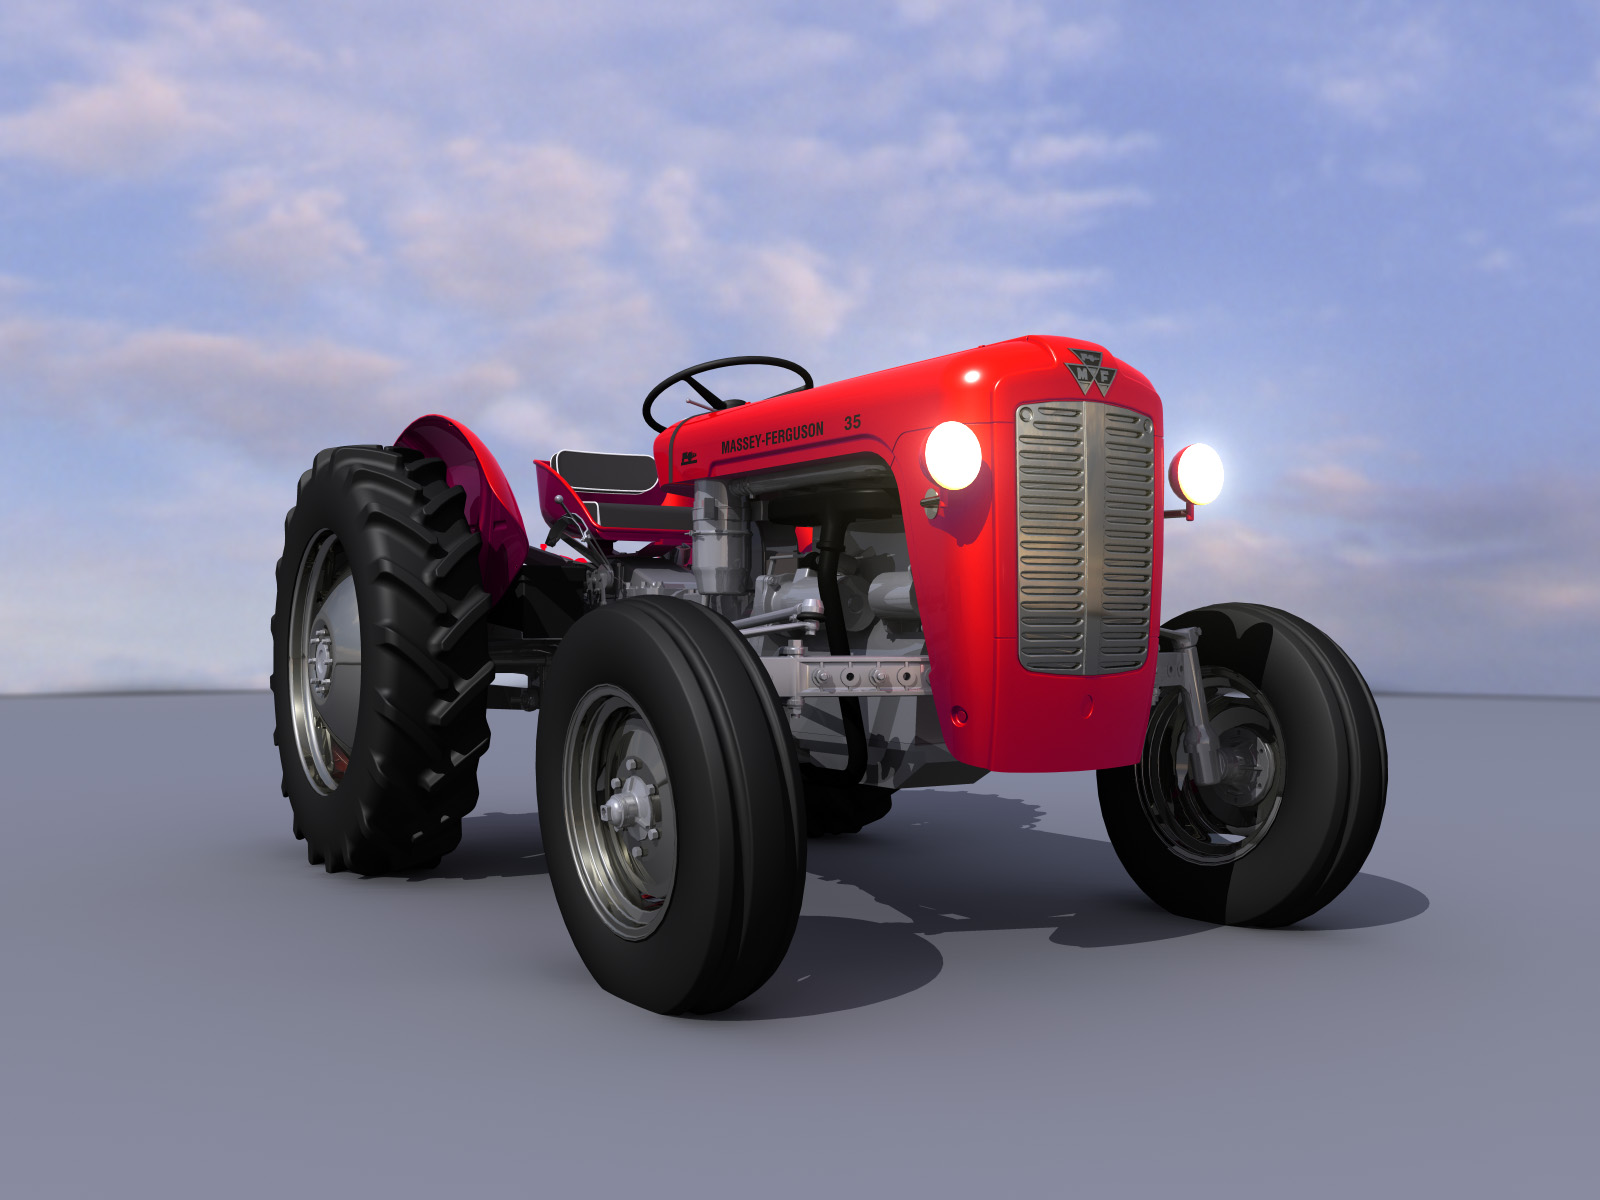 Massey Ferguson 35 By Bruno Sap At Coroflot Com